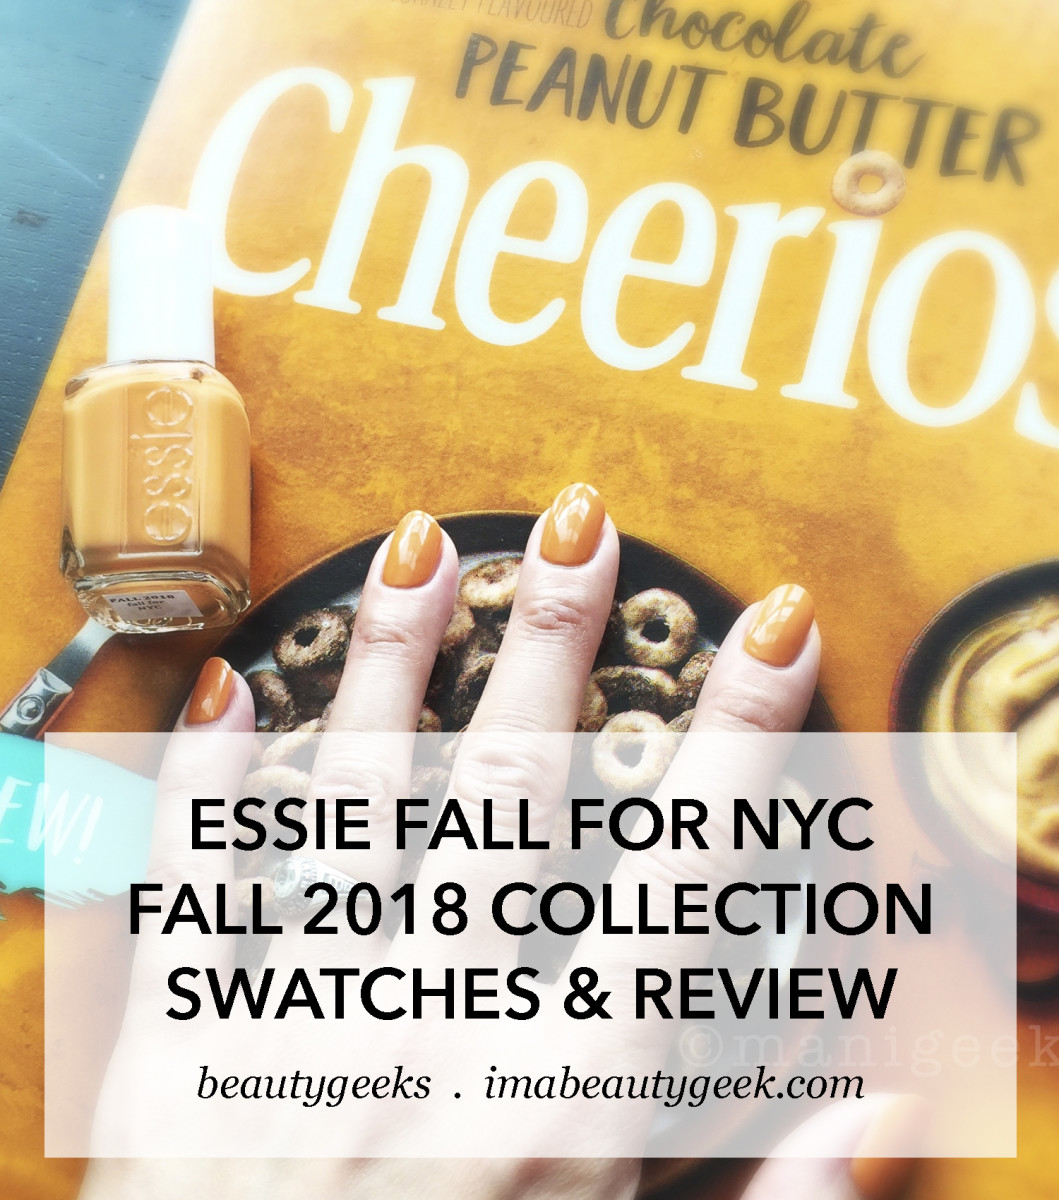 Essie Fall For NYC _ Essie Fall 2018